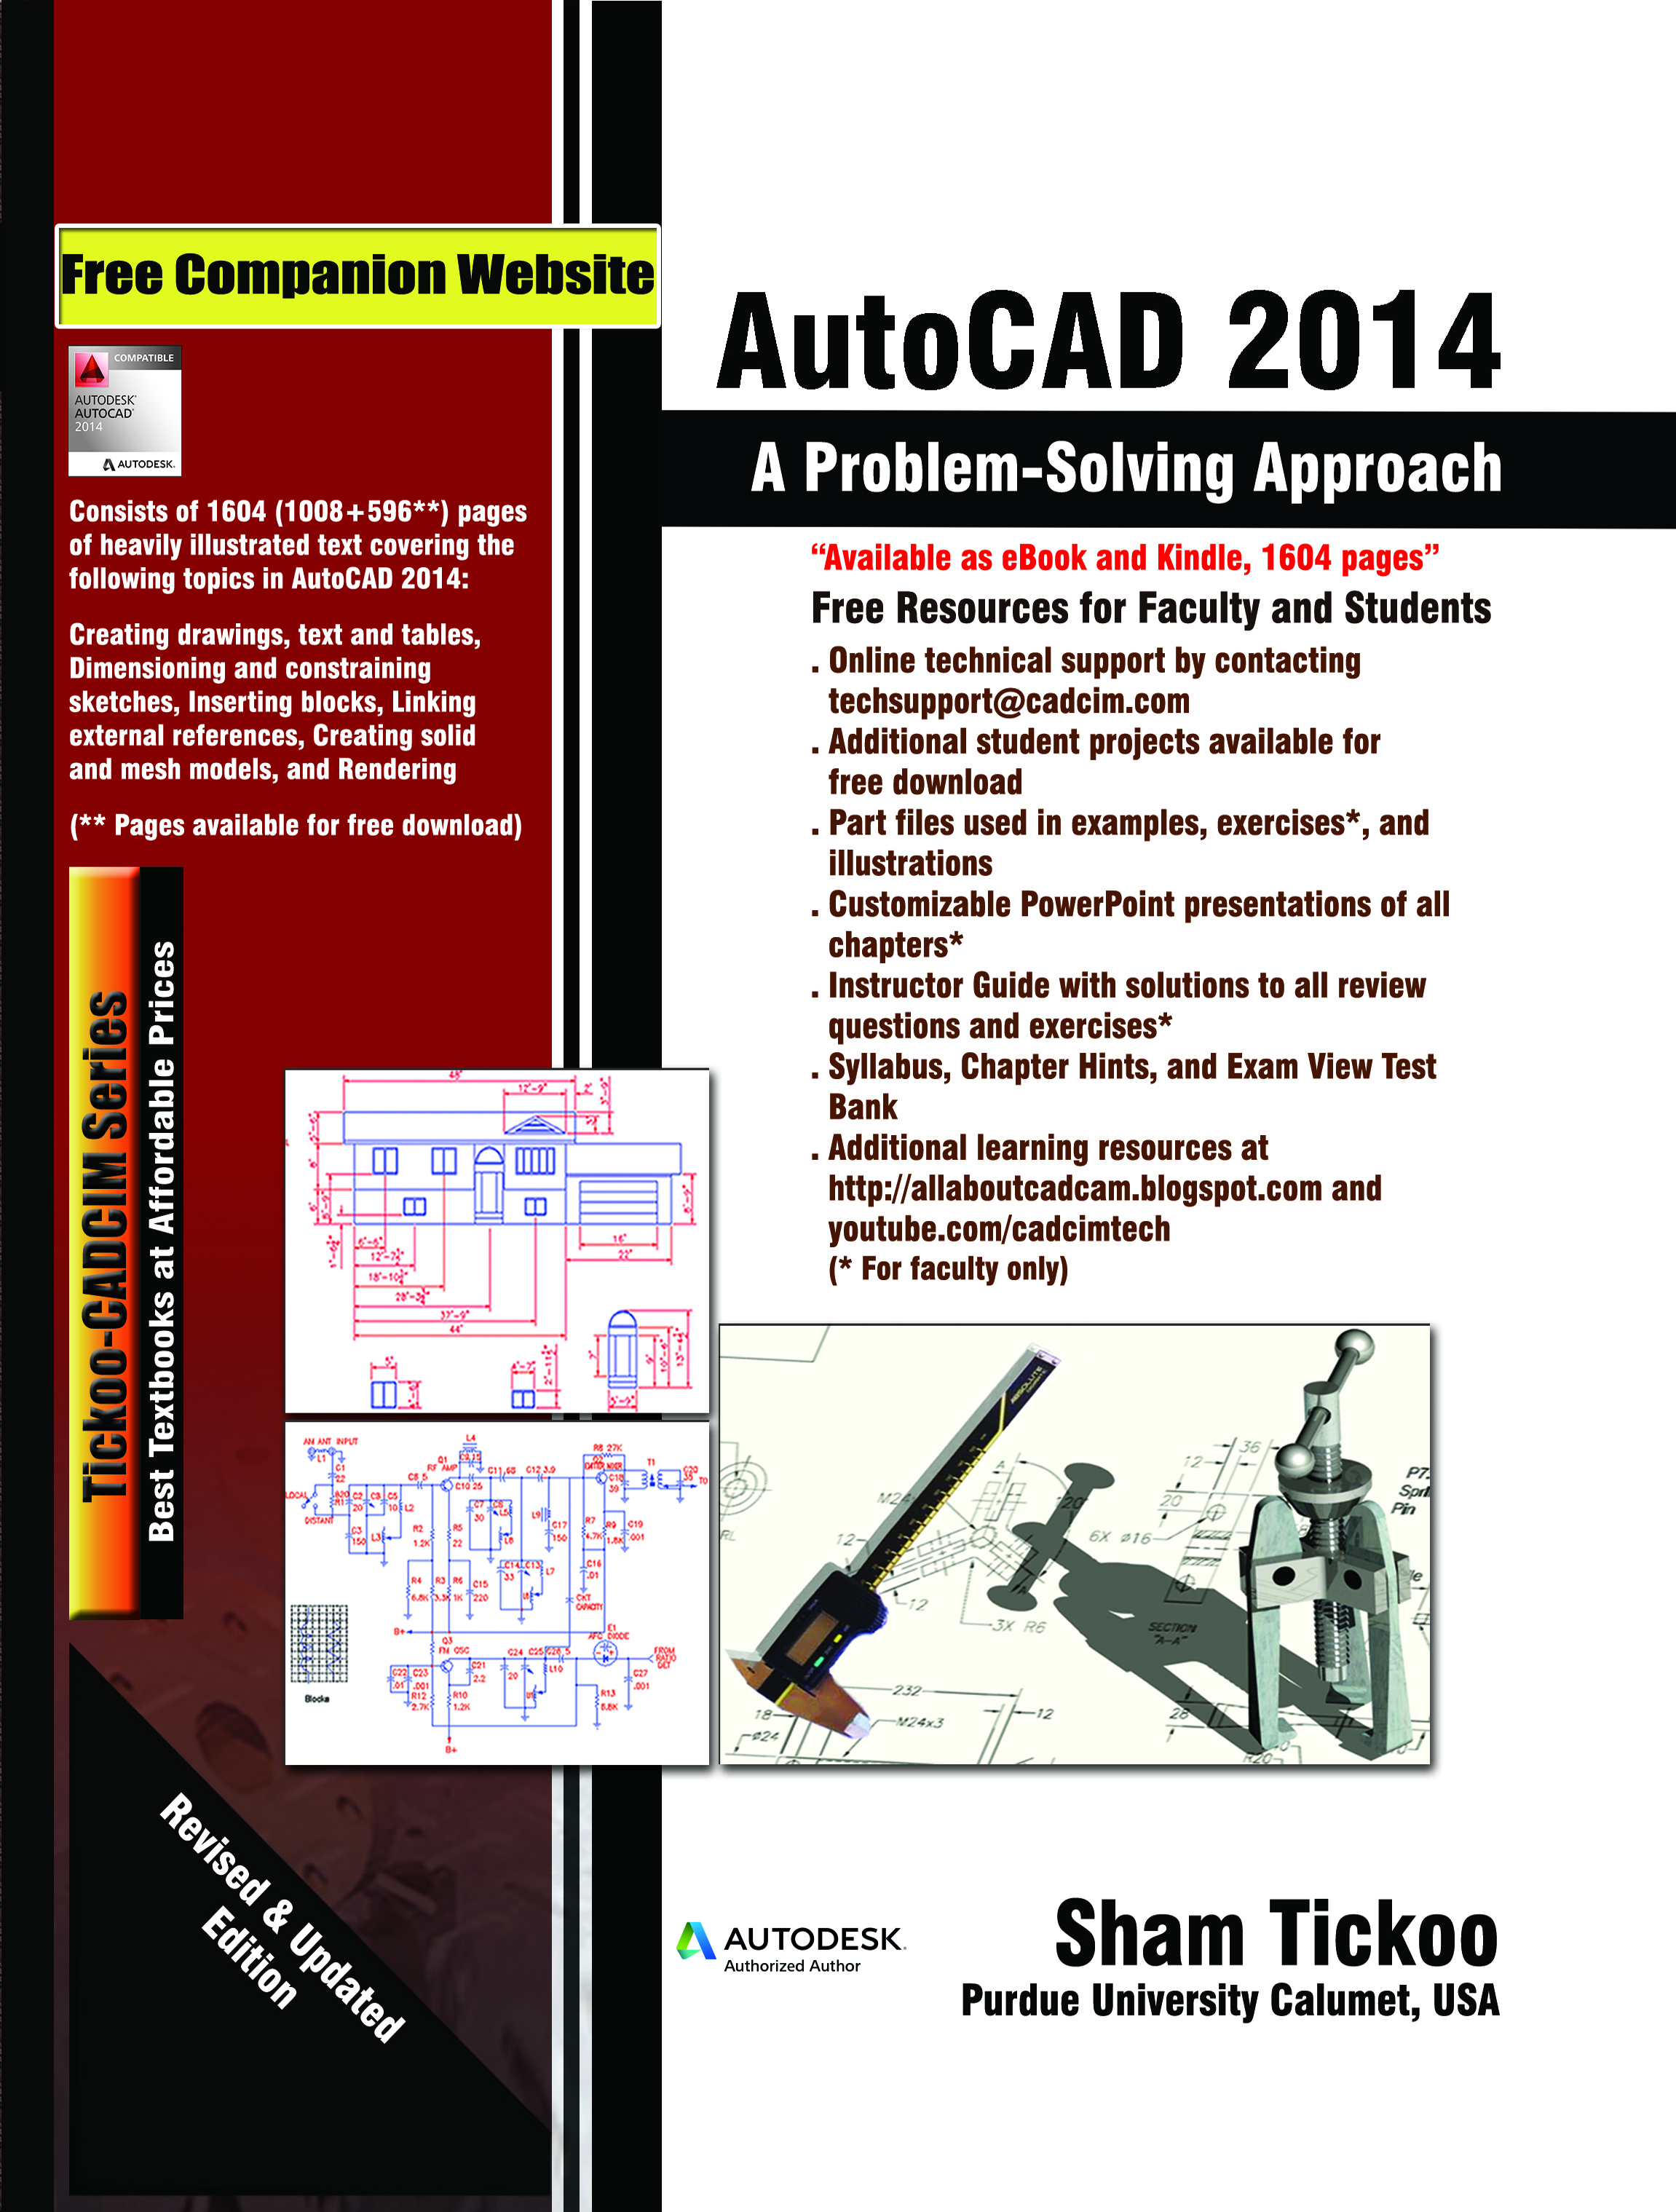 Autocad a problem solving approach click to see full image baditri Image collections